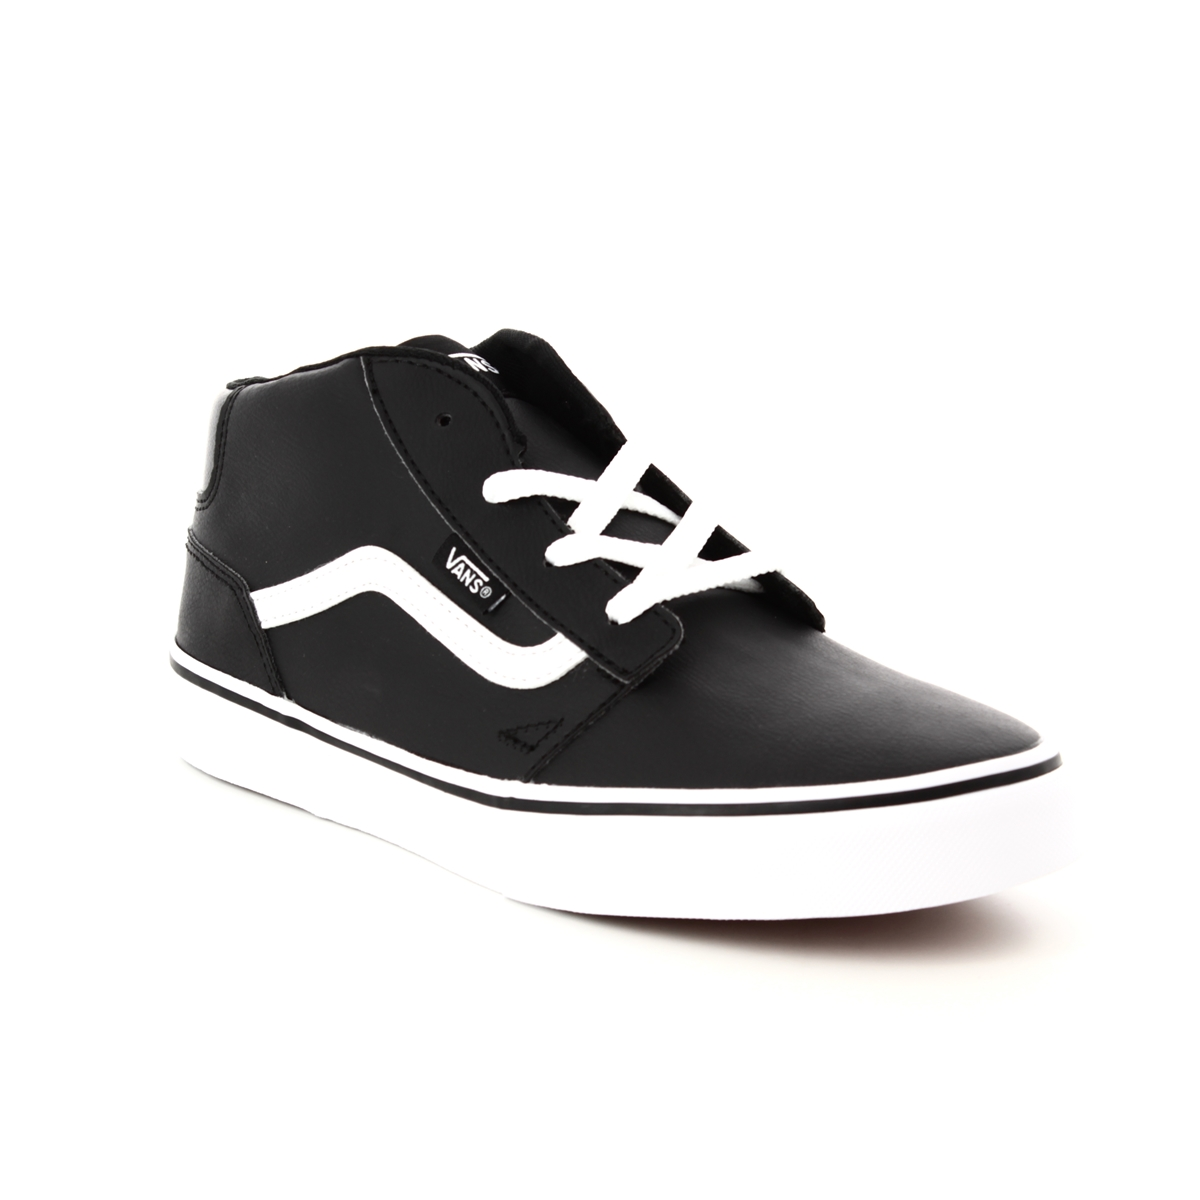 low priced cacf8 319c2 Vans Trainers - Black - VA38J4U0M 35 CHAPMAN MID SL